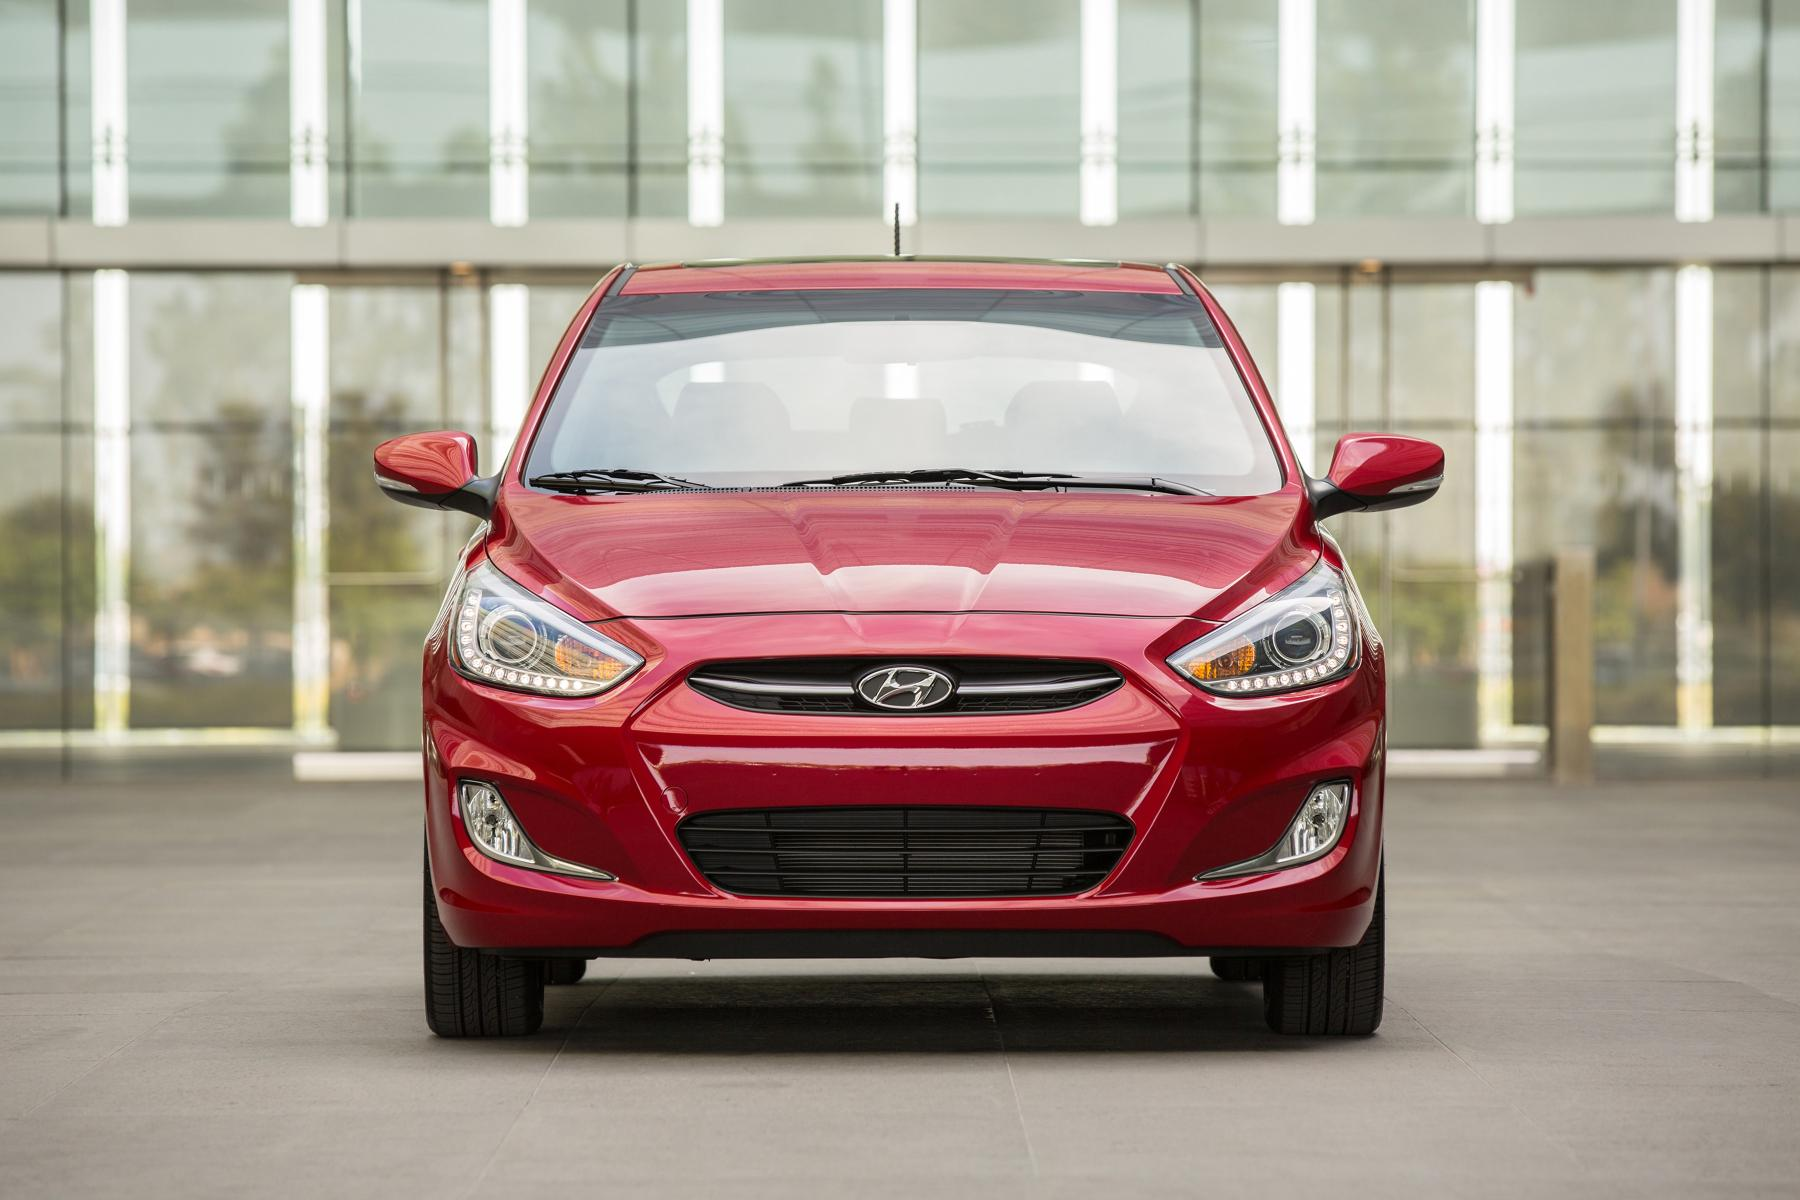 2015 hyundai accent is 100 more expensive than the 2014 model 11 photos 2015 hyundai accent publicscrutiny Images